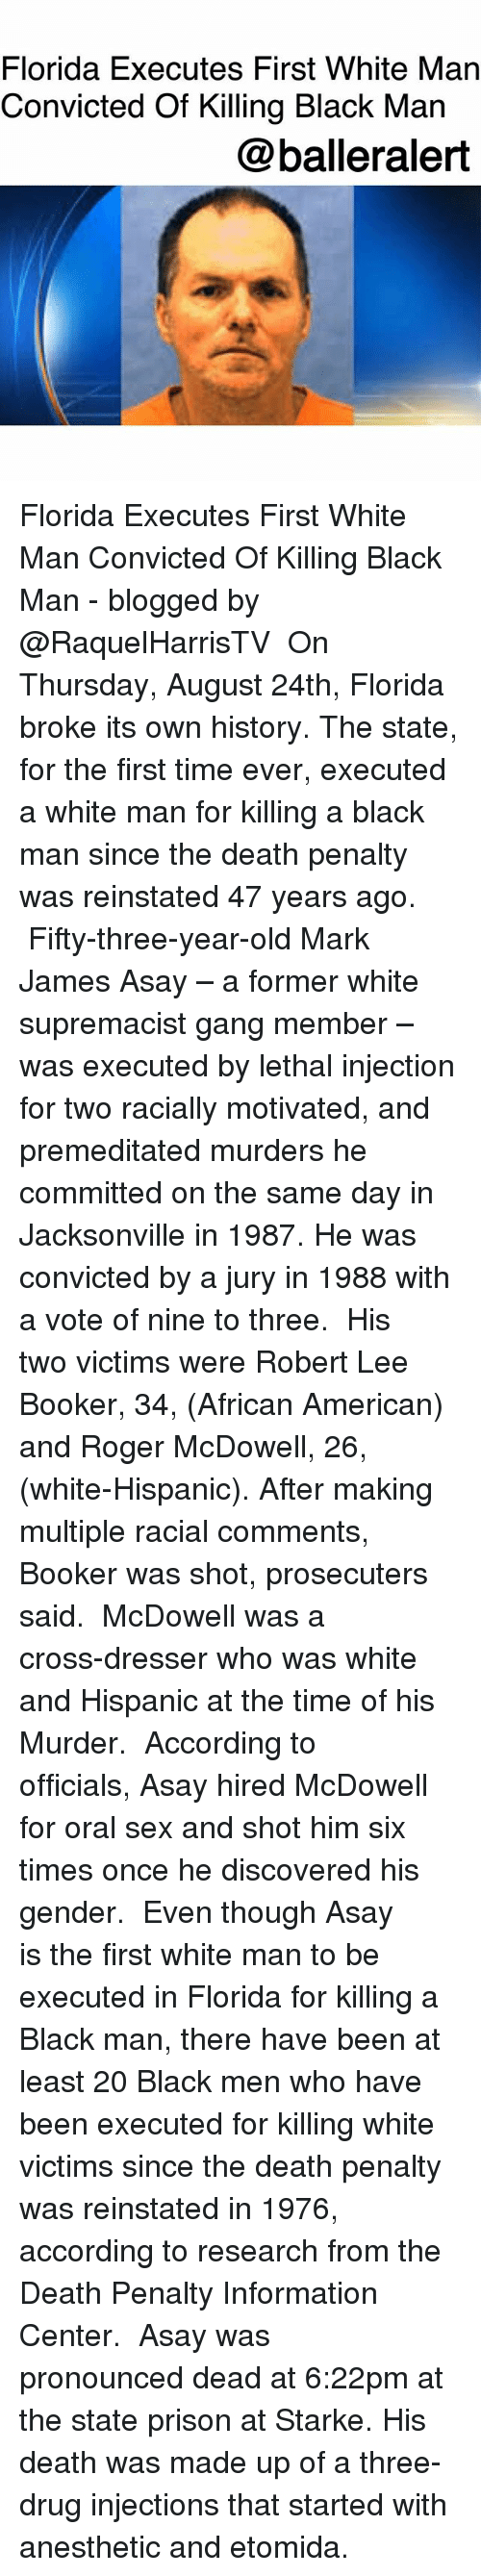 shotting: Florida Executes First White Man  Convicted Of Killing Black Man  @balleralert Florida Executes First White Man Convicted Of Killing Black Man - blogged by @RaquelHarrisTV ⠀⠀⠀⠀⠀⠀⠀ On Thursday, August 24th, Florida broke its own history. The state, for the first time ever, executed a white man for killing a black man since the death penalty was reinstated 47 years ago. ⠀⠀⠀⠀⠀⠀⠀ Fifty-three-year-old Mark James Asay – a former white supremacist gang member – was executed by lethal injection for two racially motivated, and premeditated murders he committed on the same day in Jacksonville in 1987. He was convicted by a jury in 1988 with a vote of nine to three. ⠀⠀⠀⠀⠀⠀⠀ His two victims were Robert Lee Booker, 34, (African American) and Roger McDowell, 26, (white-Hispanic). After making multiple racial comments, Booker was shot, prosecuters said. ⠀⠀⠀⠀⠀⠀⠀ McDowell was a cross-dresser who was white and Hispanic at the time of his Murder. ⠀⠀⠀⠀⠀⠀⠀ According to officials, Asay hired McDowell for oral sex and shot him six times once he discovered his gender. ⠀⠀⠀⠀⠀⠀⠀ Even though Asay is the first white man to be executed in Florida for killing a Black man, there have been at least 20 Black men who have been executed for killing white victims since the death penalty was reinstated in 1976, according to research from the Death Penalty Information Center. ⠀⠀⠀⠀⠀⠀⠀ Asay was pronounced dead at 6:22pm at the state prison at Starke. His death was made up of a three-drug injections that started with anesthetic and etomida.